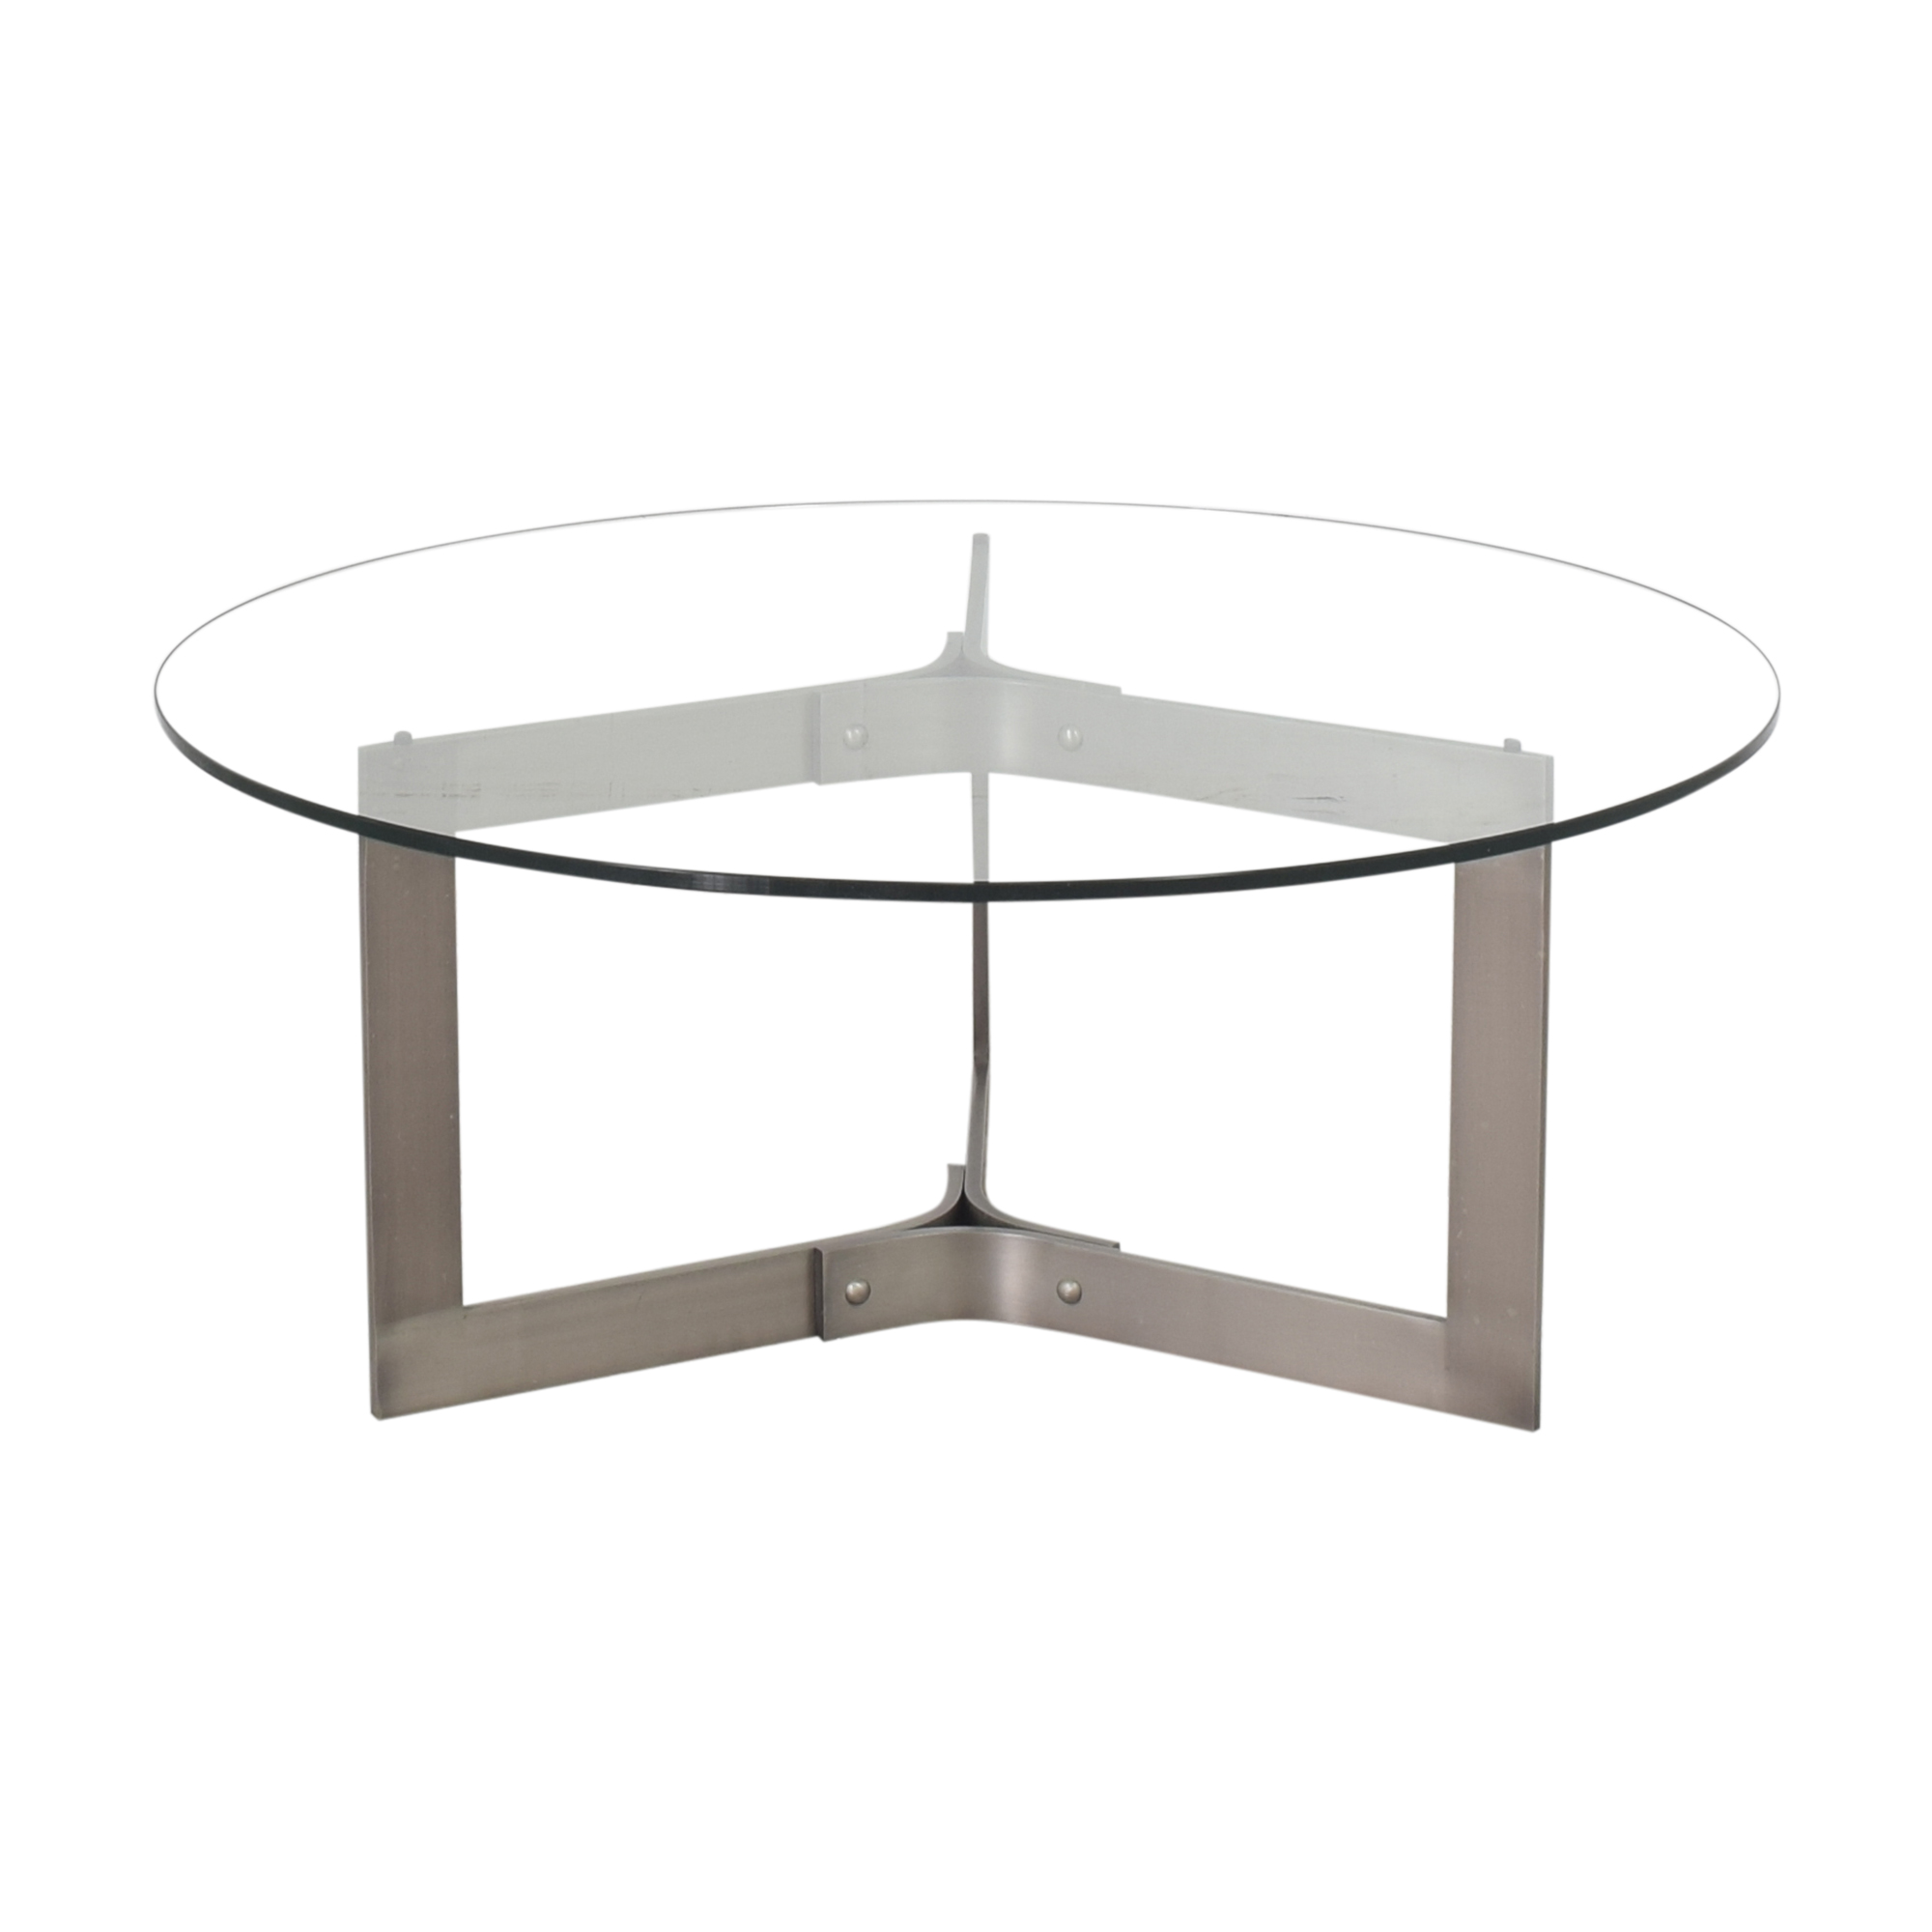 Crate & Barrel Crate & Barrel Round Coffee Table with Transparent Surface ma